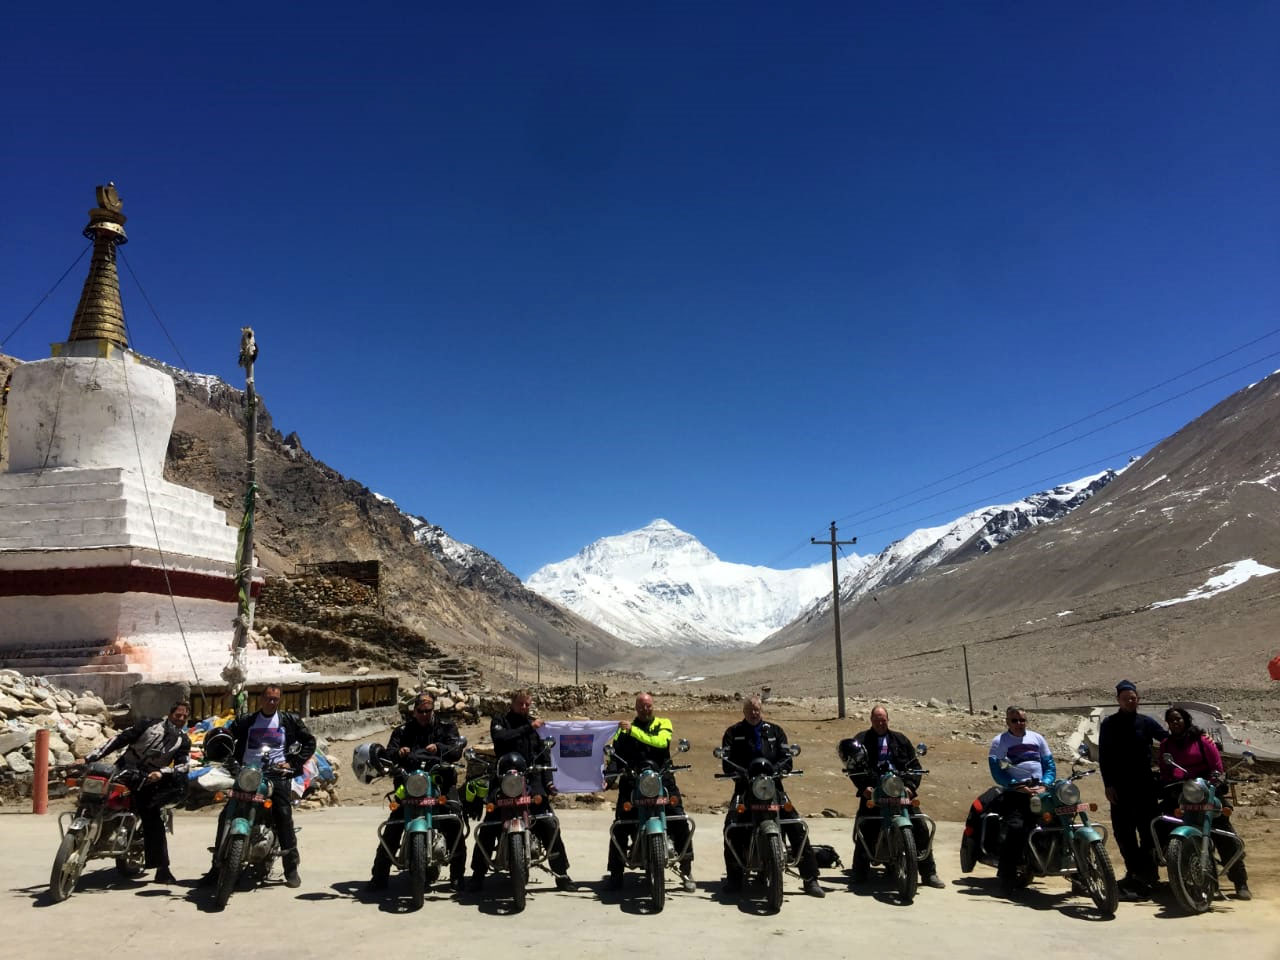 riders-in-Everest-base-camp